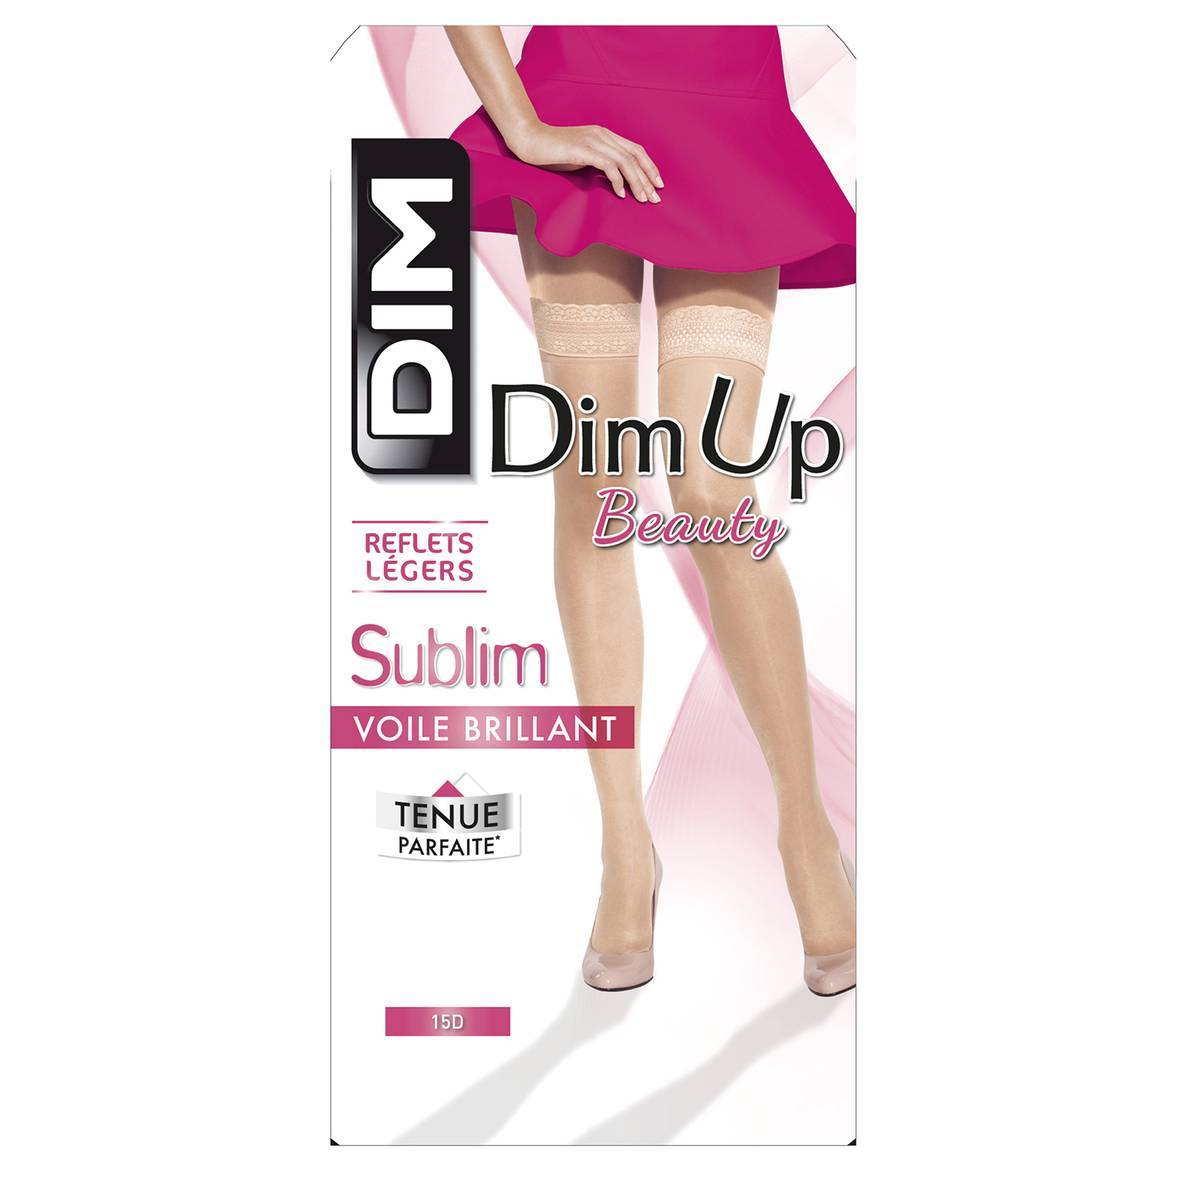 DIM Medias autoadherentes Dim up Beauty Sublim 15 deniers negro